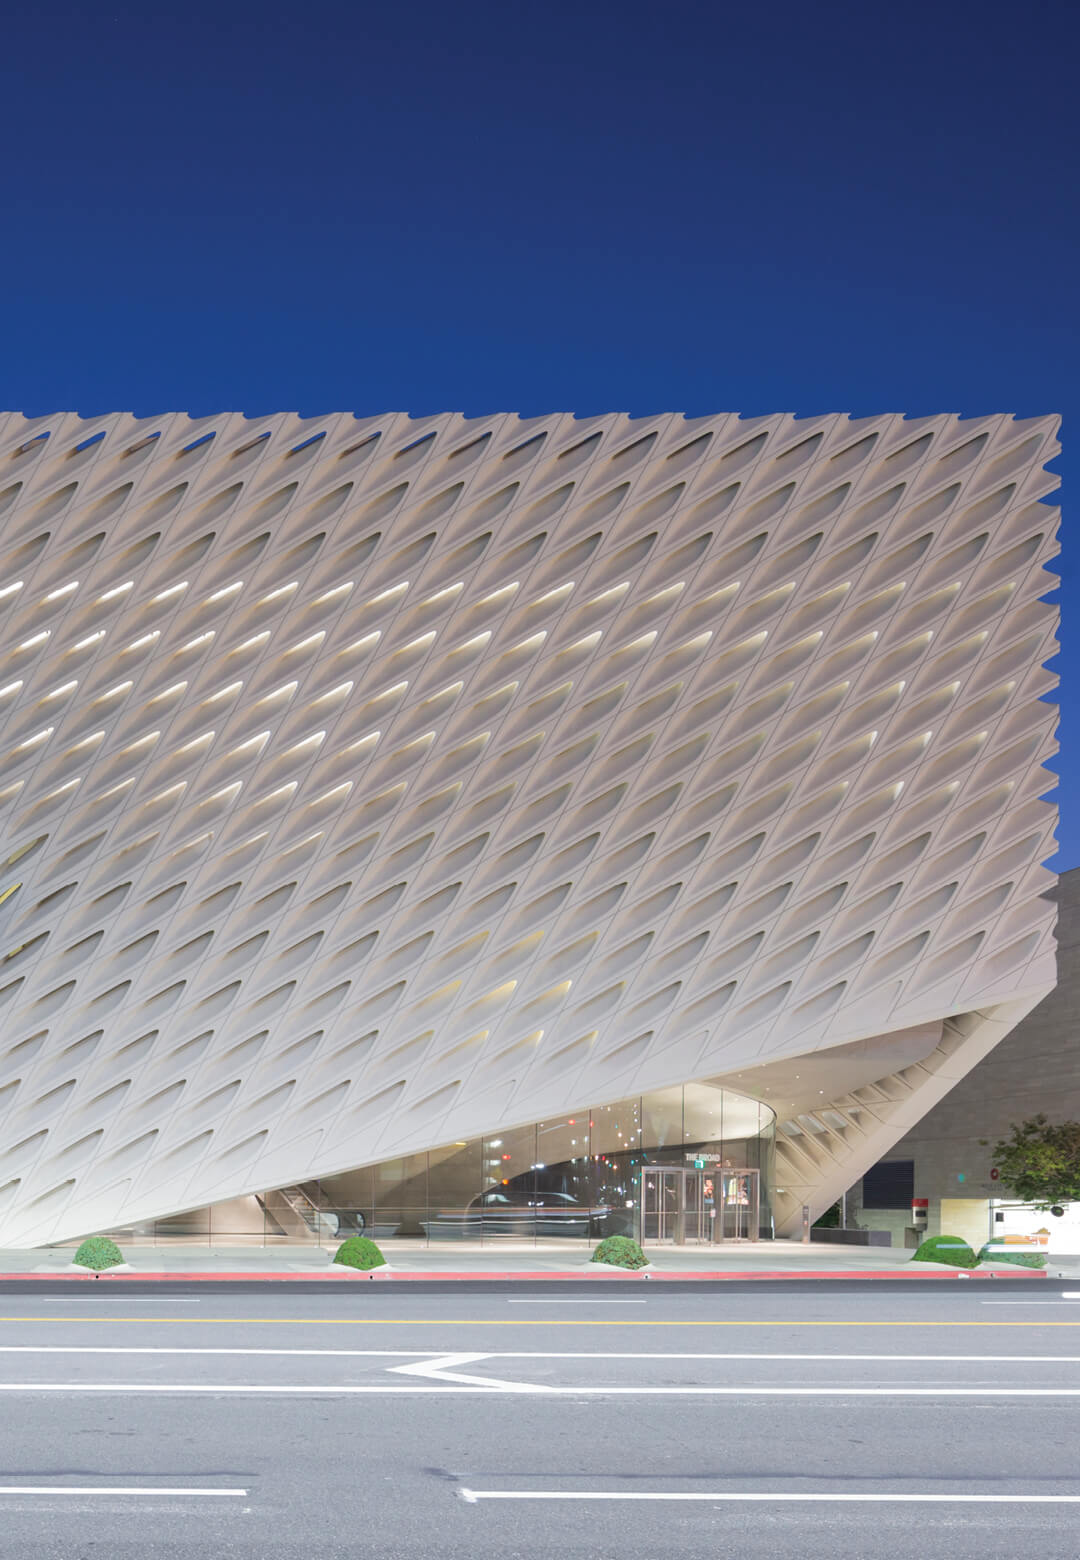 The Broad is a sedate yet impressive structure wrapped in a perforated exoskeleton that lifts on two sides to allow entry and exit | The Broad by Diller Scofidio + Renfro | Private Museums of the World | STIRworld